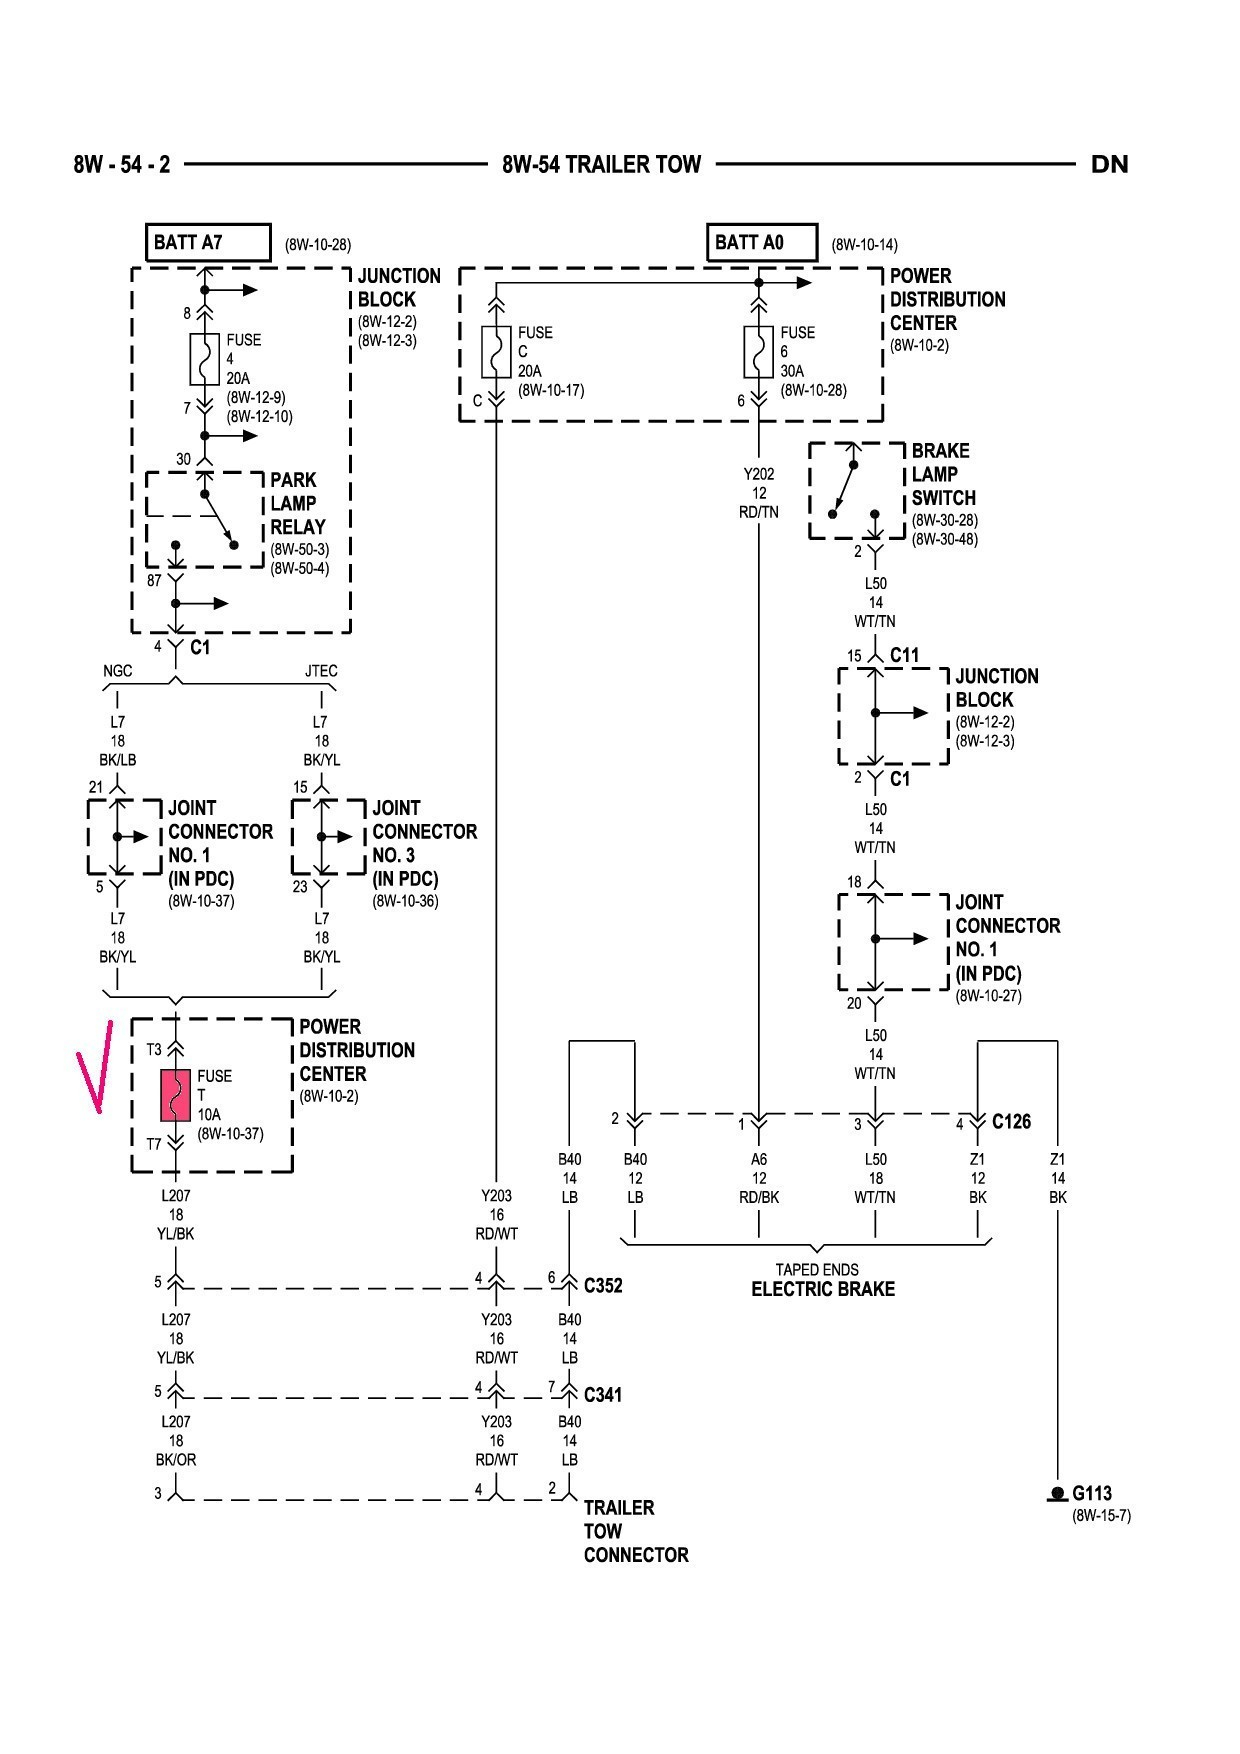 2001 dodge dakota trailer wiring diagram Collection-Trailer Wiring Diagram For Dodge Durango Valid Trailer Wiring Diagram Dodge Ram Refrence 2001 Dodge Ram Wiring 12-g